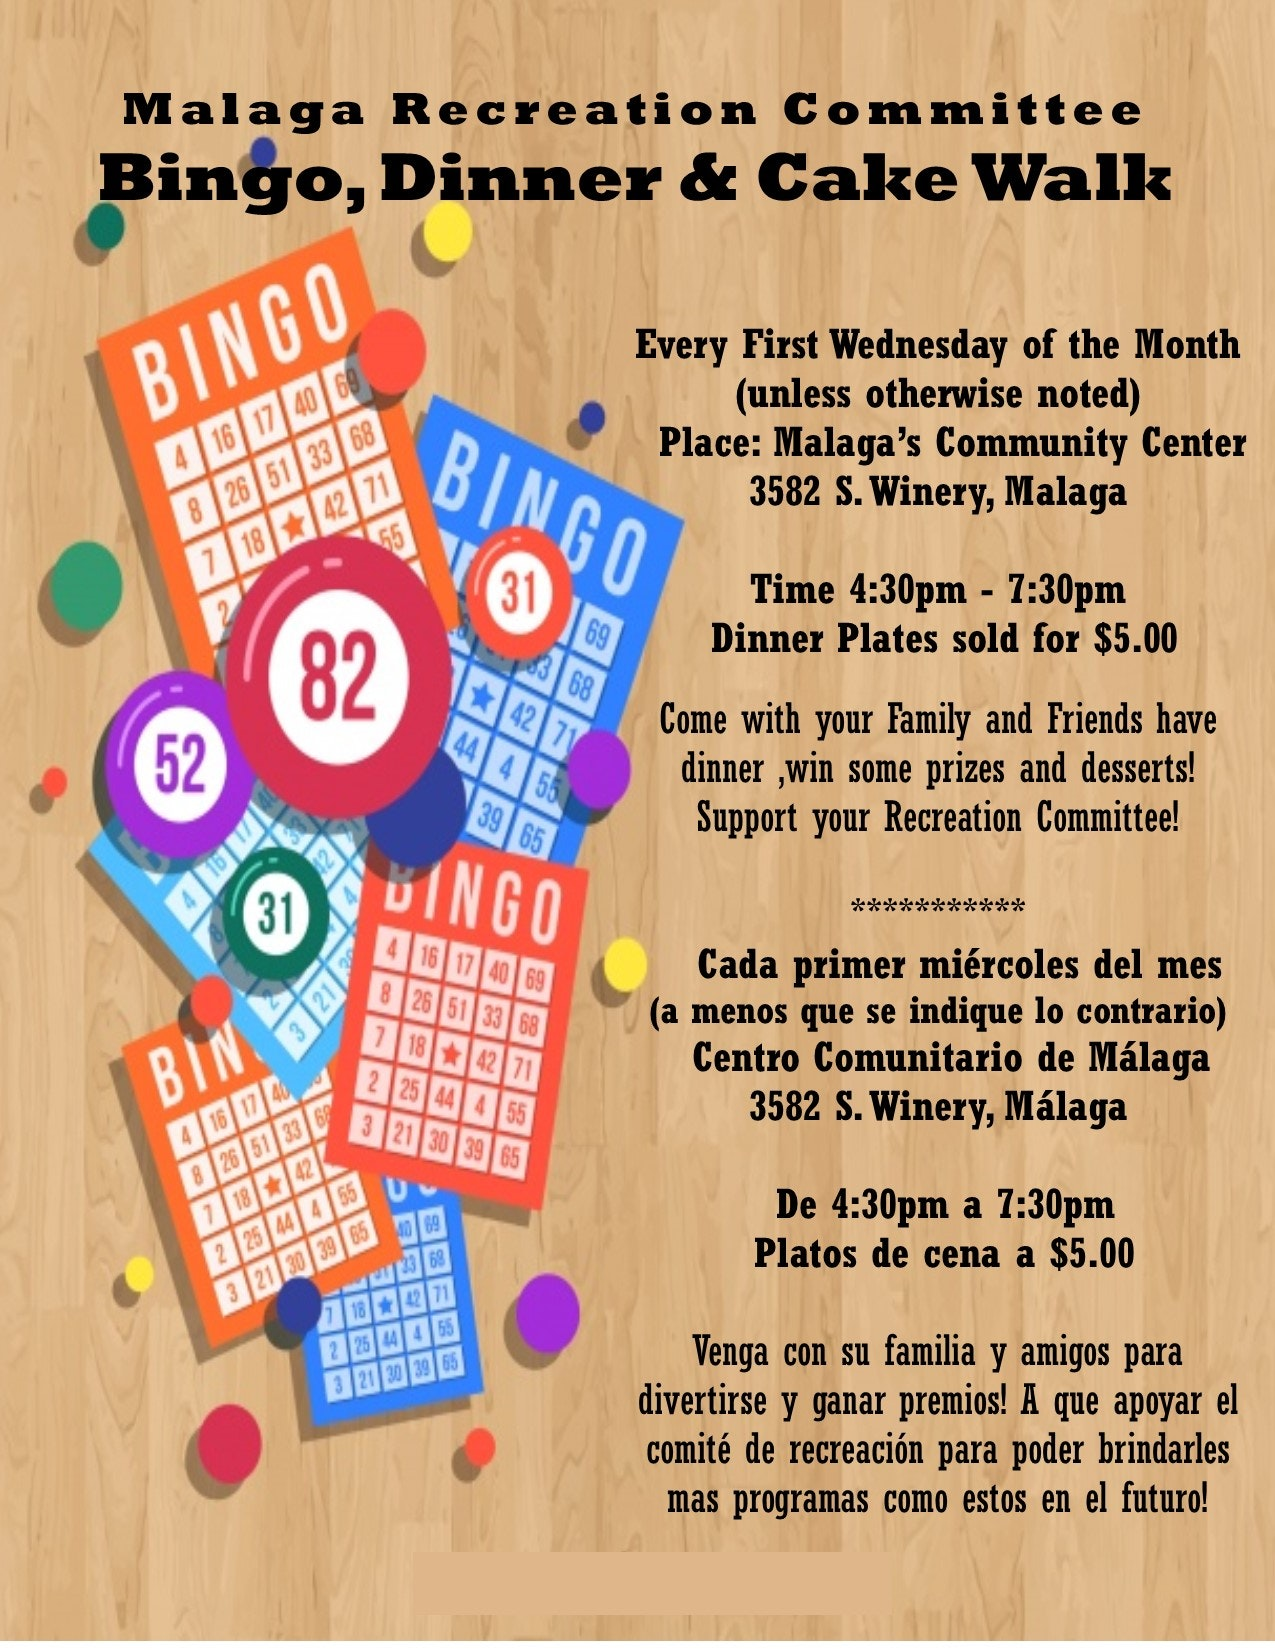 Family bingo cancelled until construction at the recreation center is complete.